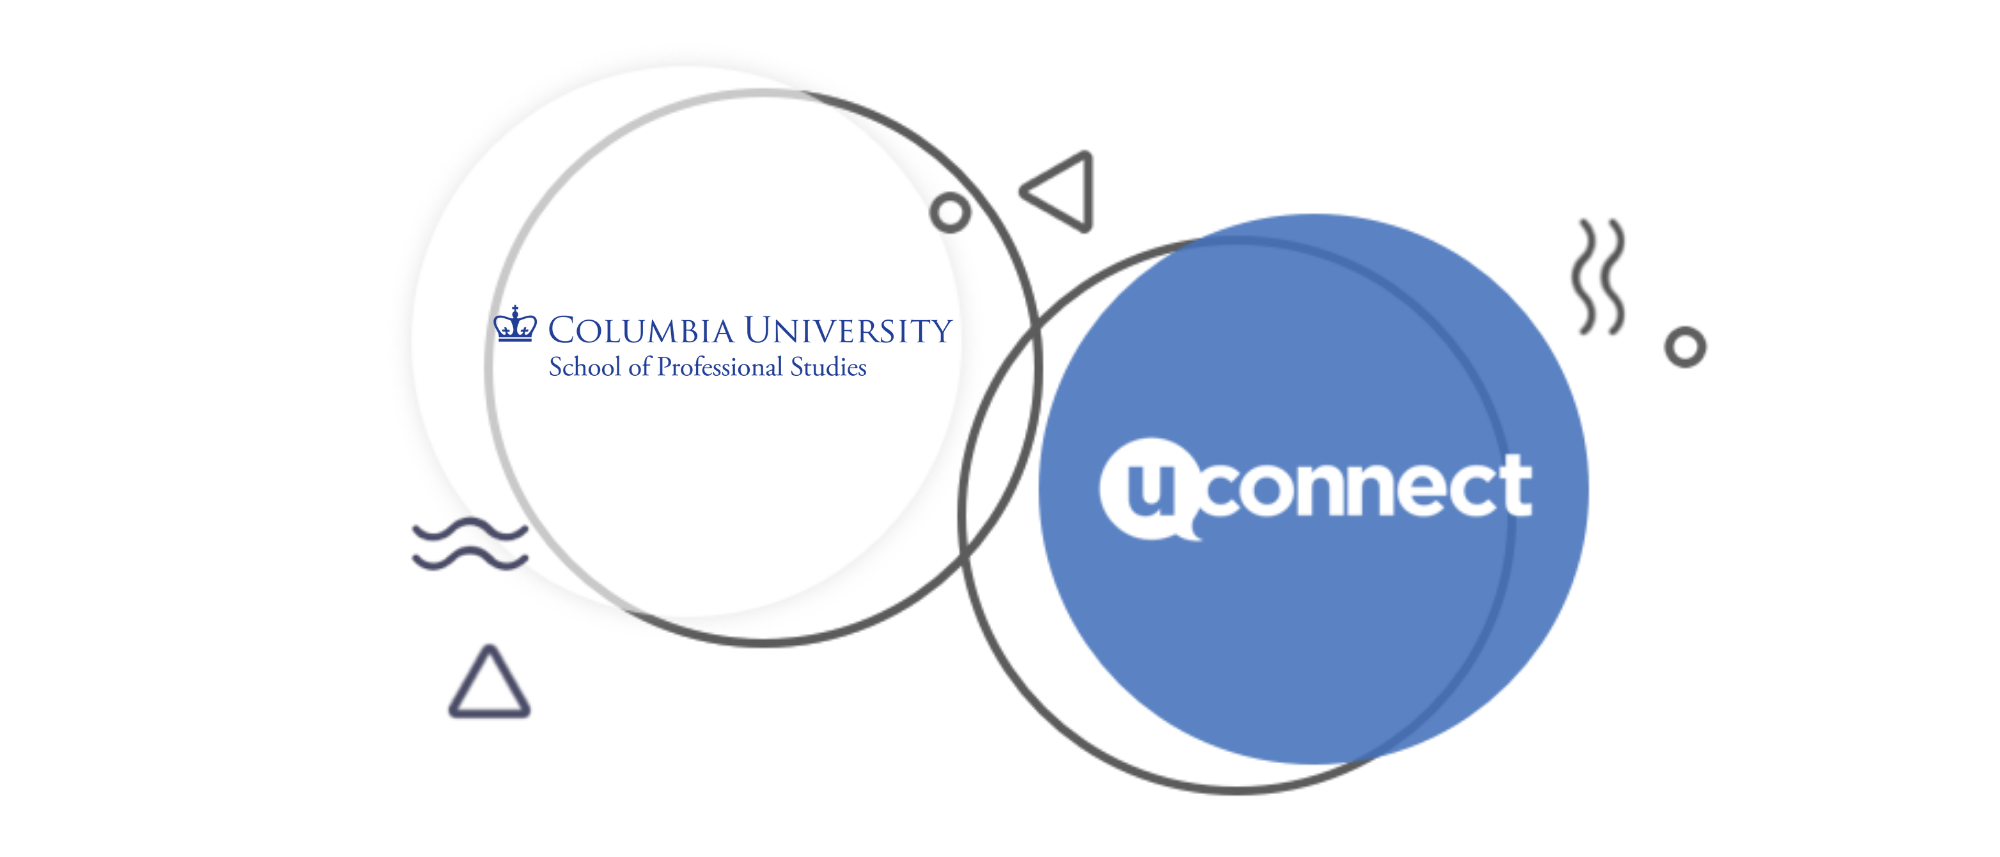 Columbia University's School of Professional Studies Builds Community For Diverse Student Populations With An Accessible Virtual Career Center